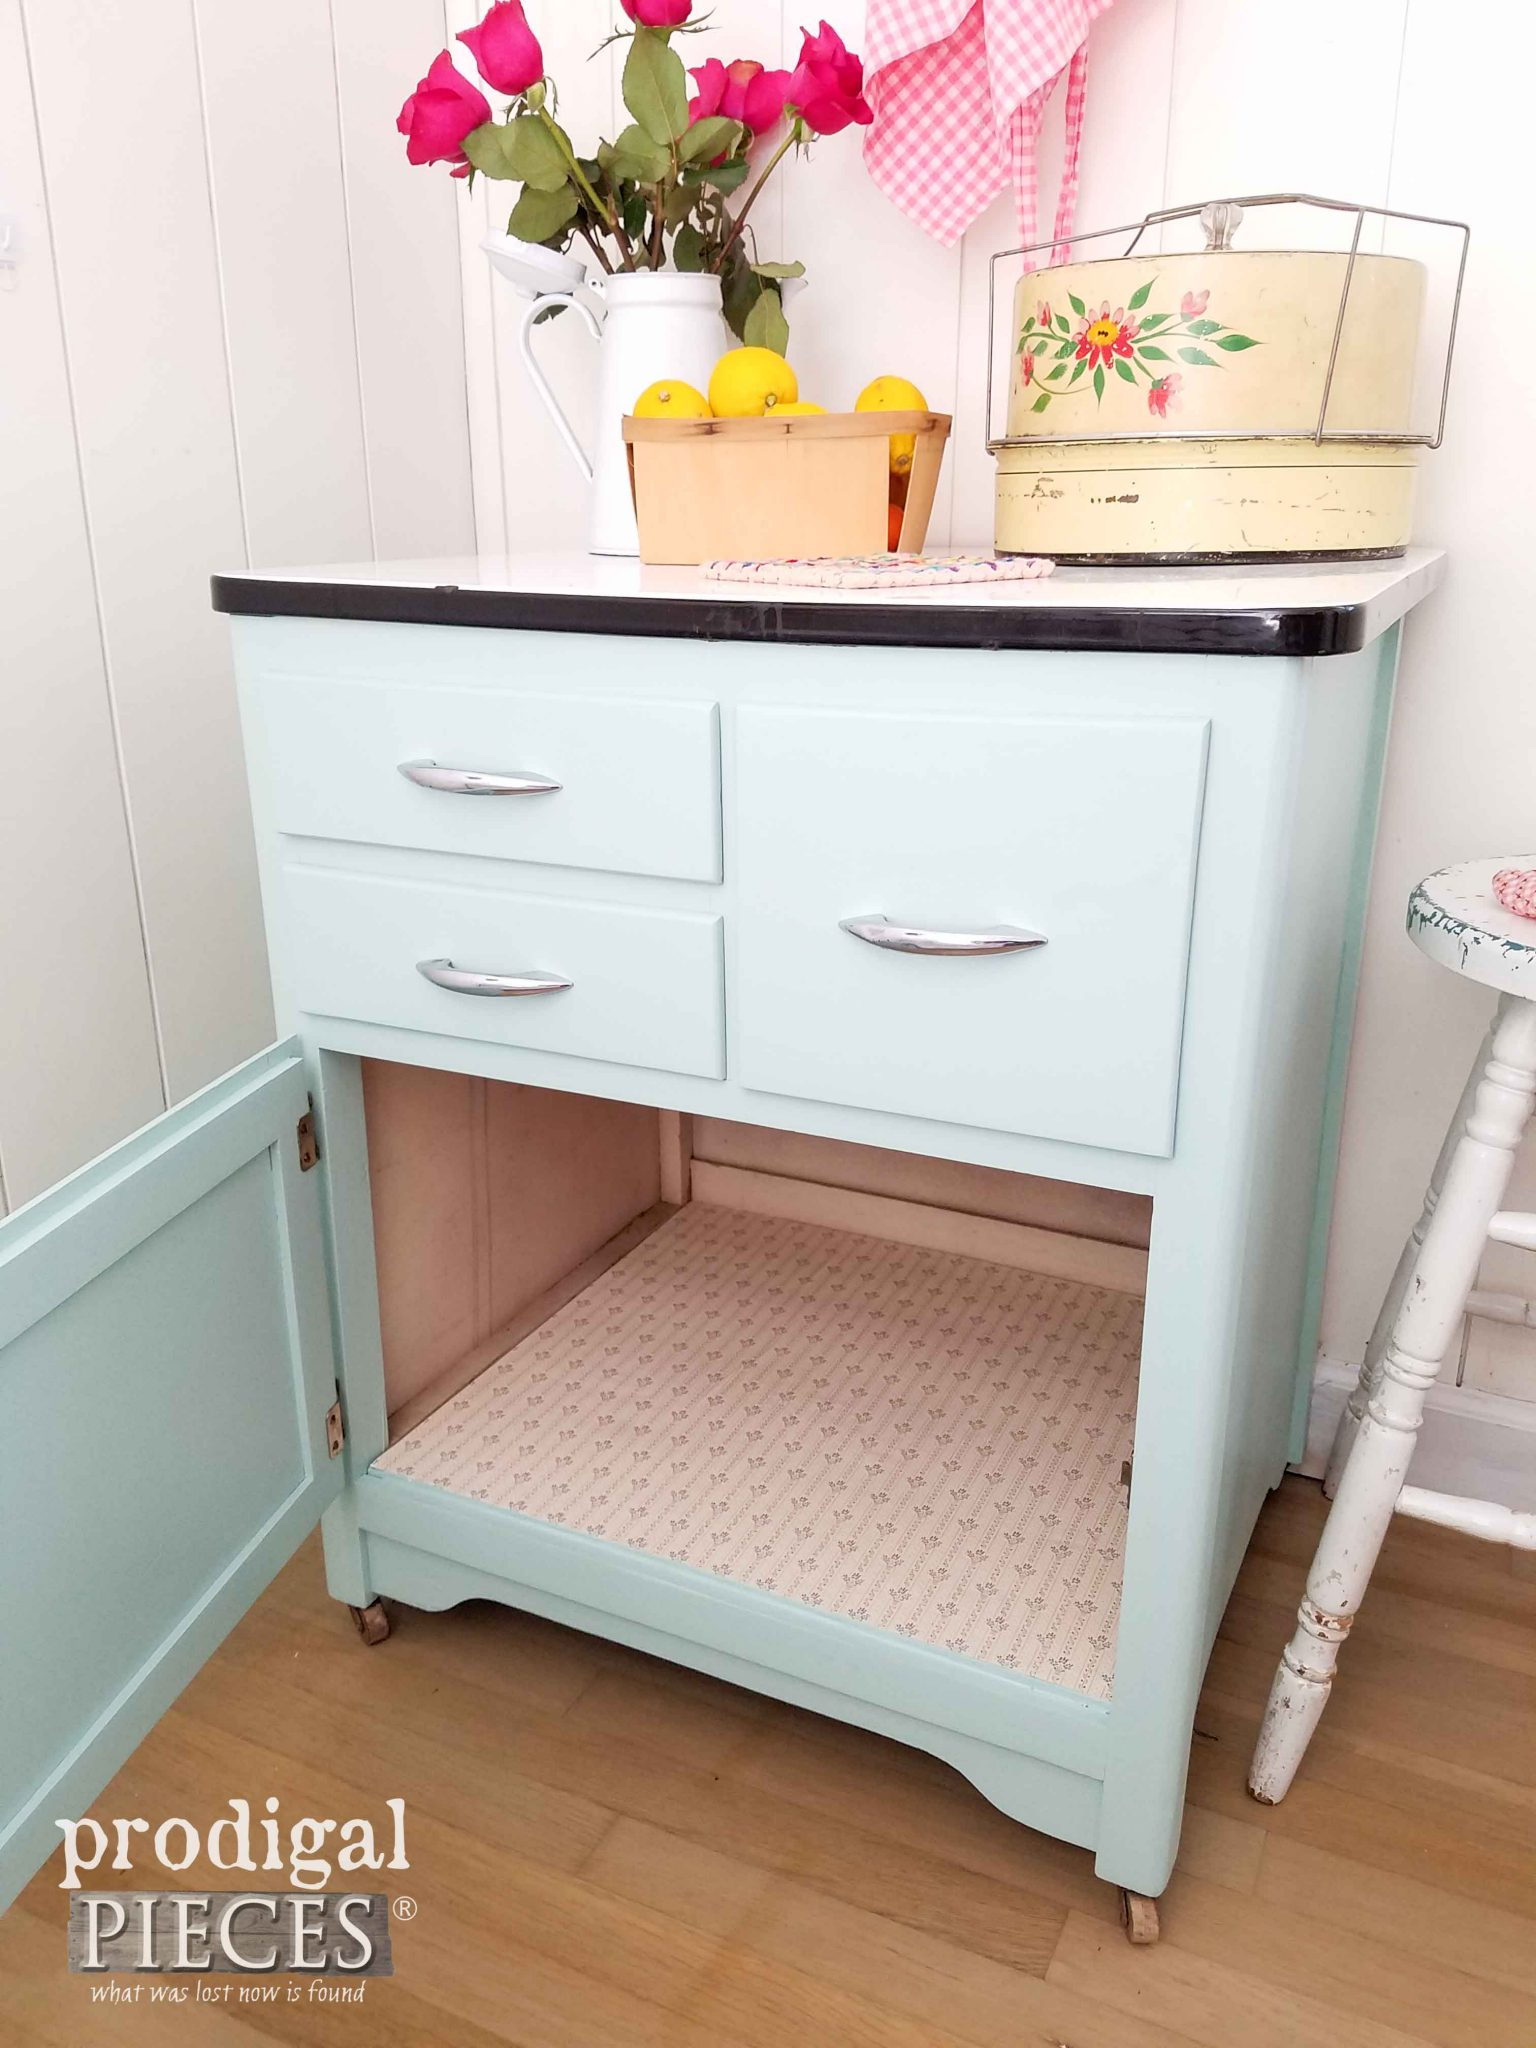 Inside Cottage Style Cabinet by Prodigal Pieces | prodigalpieces.com